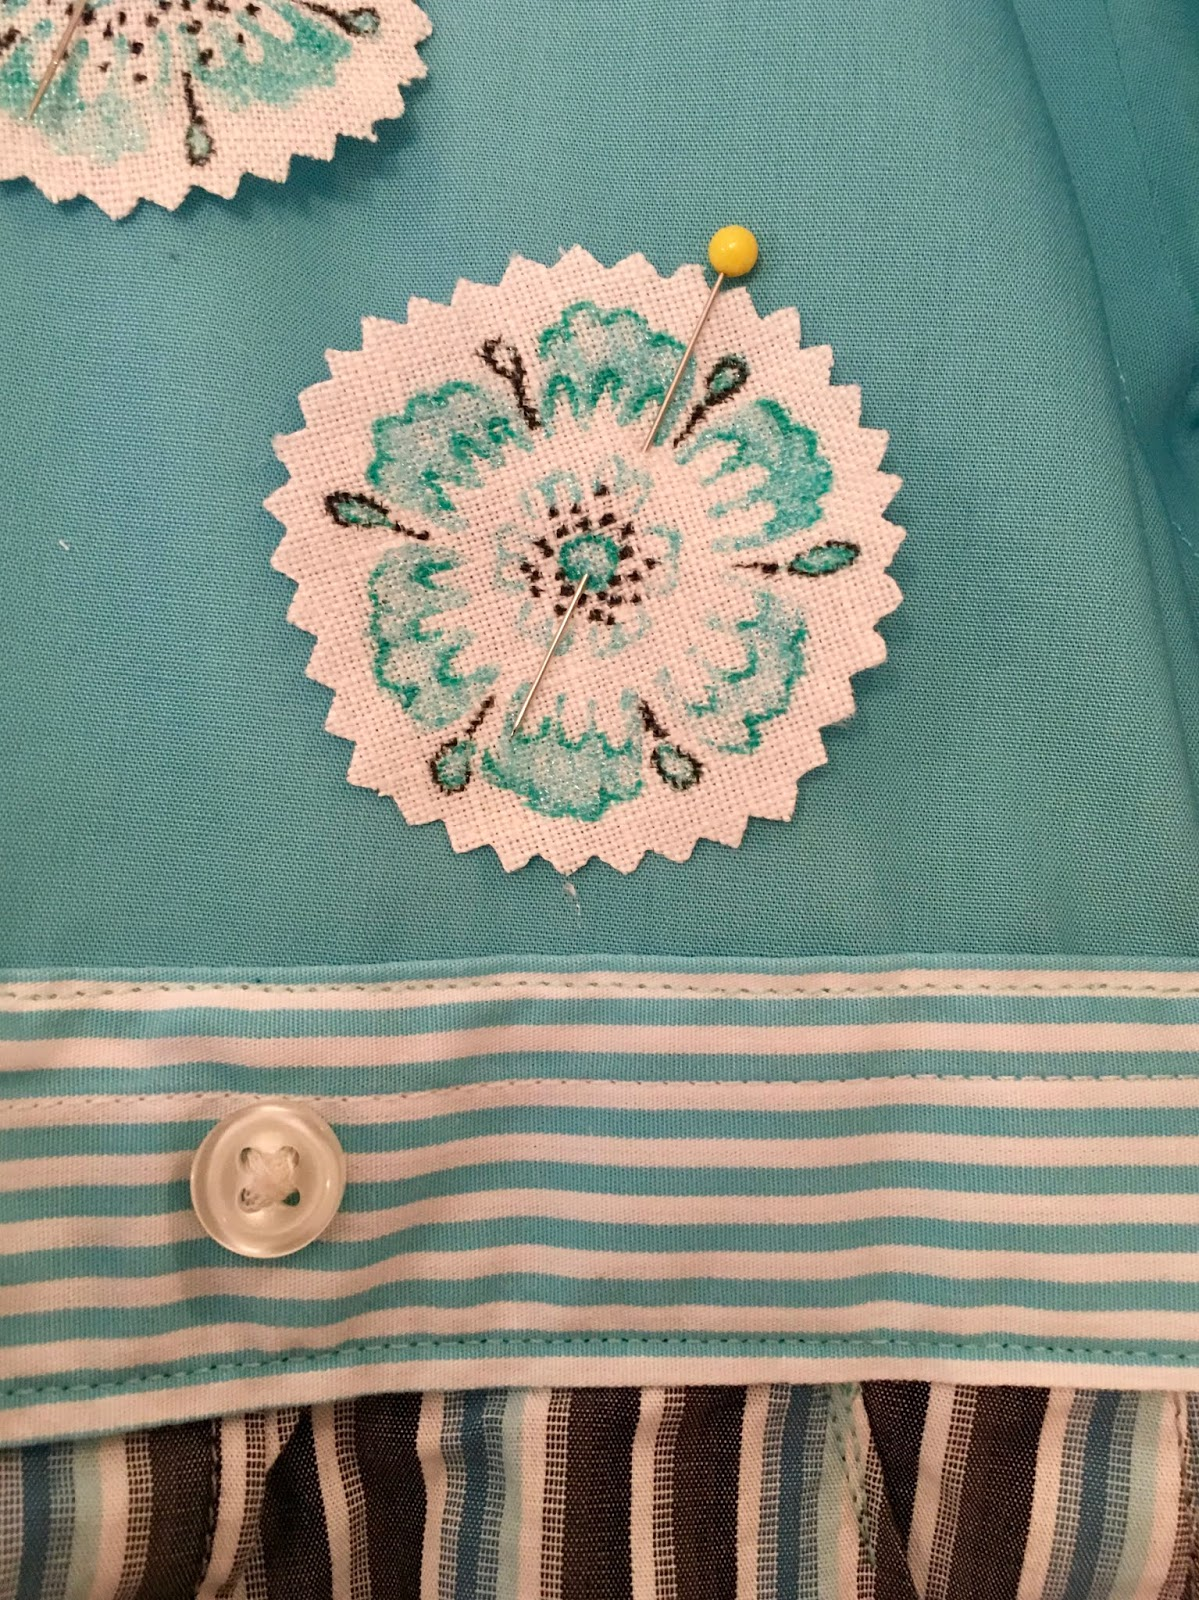 4 ways to do fabric painting wikihow.